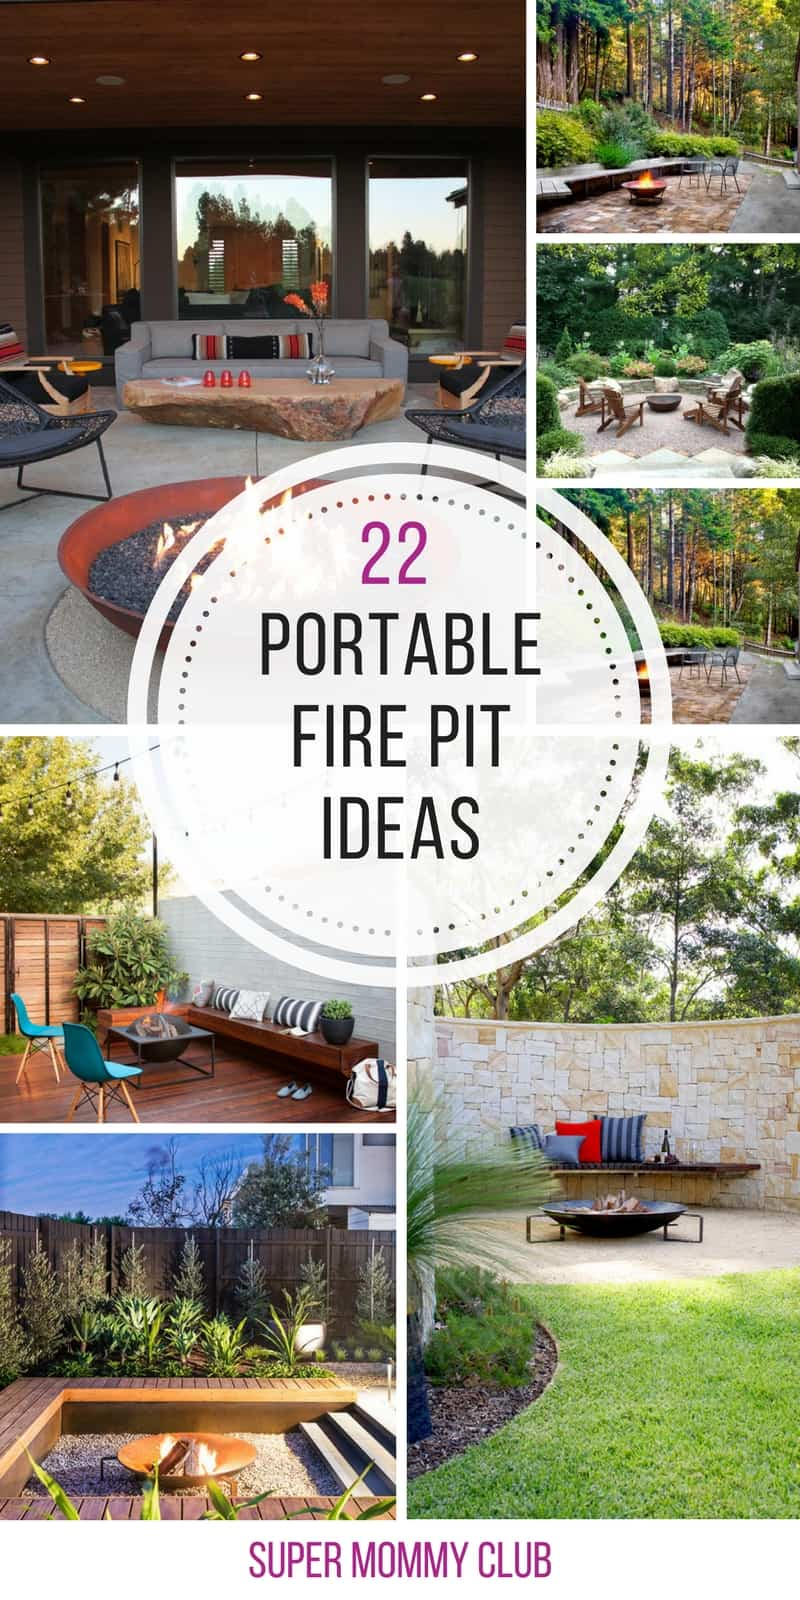 In LOVE with these portable fire pit ideas we NEED one on our patio! Thanks for sharing!